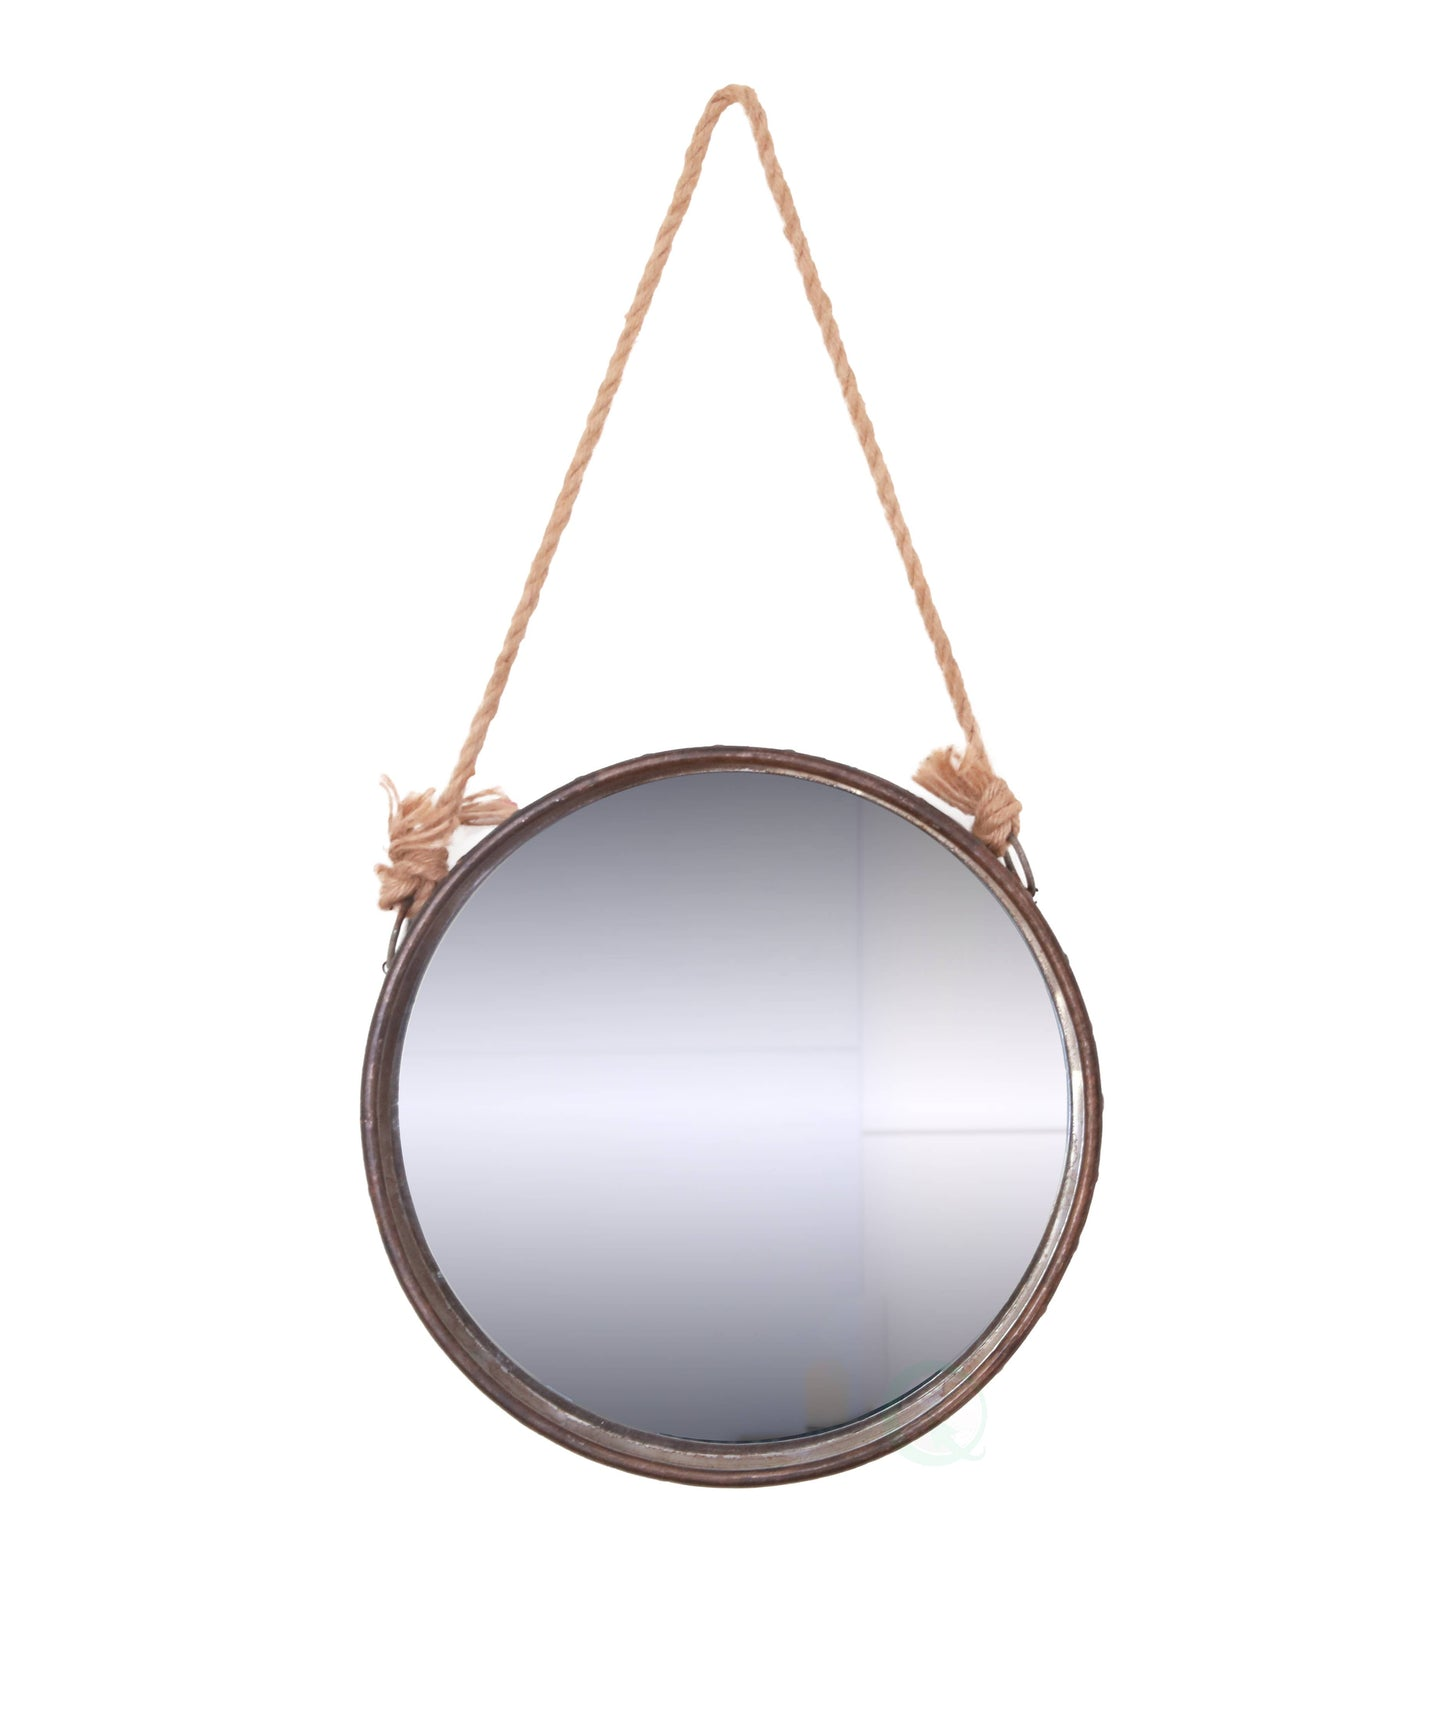 Galvanized Metal Framed Round Wall Mirror With Rope